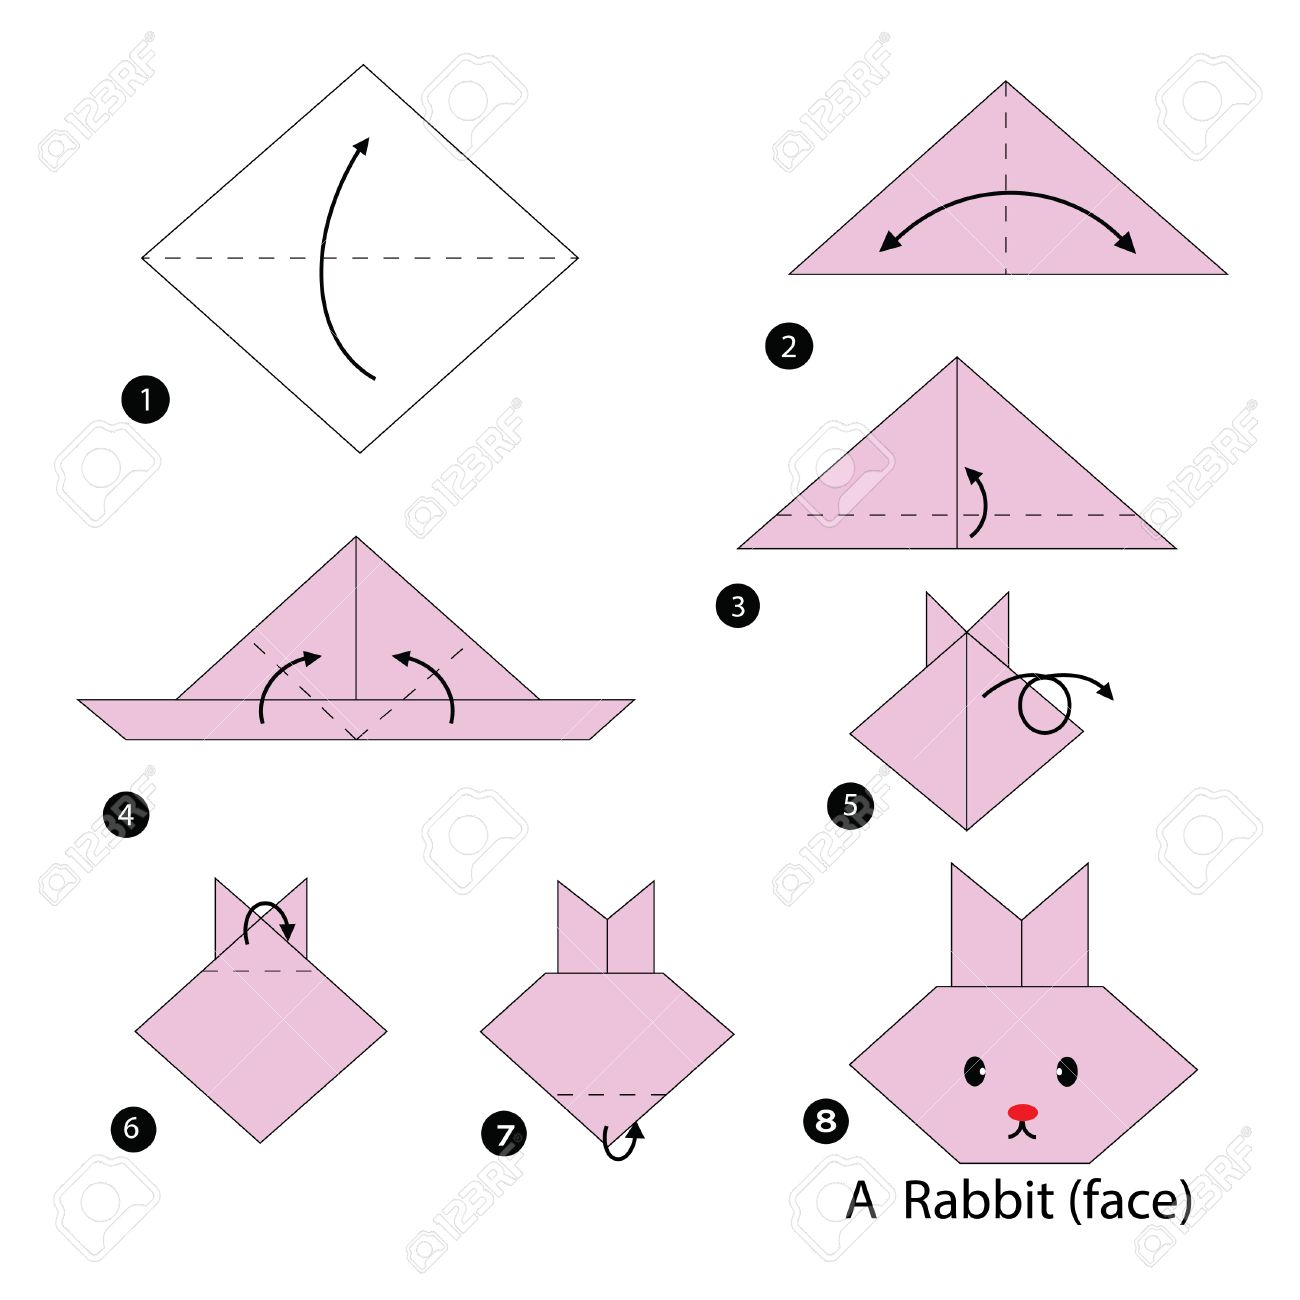 Step by step instructions how to make origami rabbit royalty free step by step instructions how to make origami rabbit stock vector 46230771 jeuxipadfo Gallery